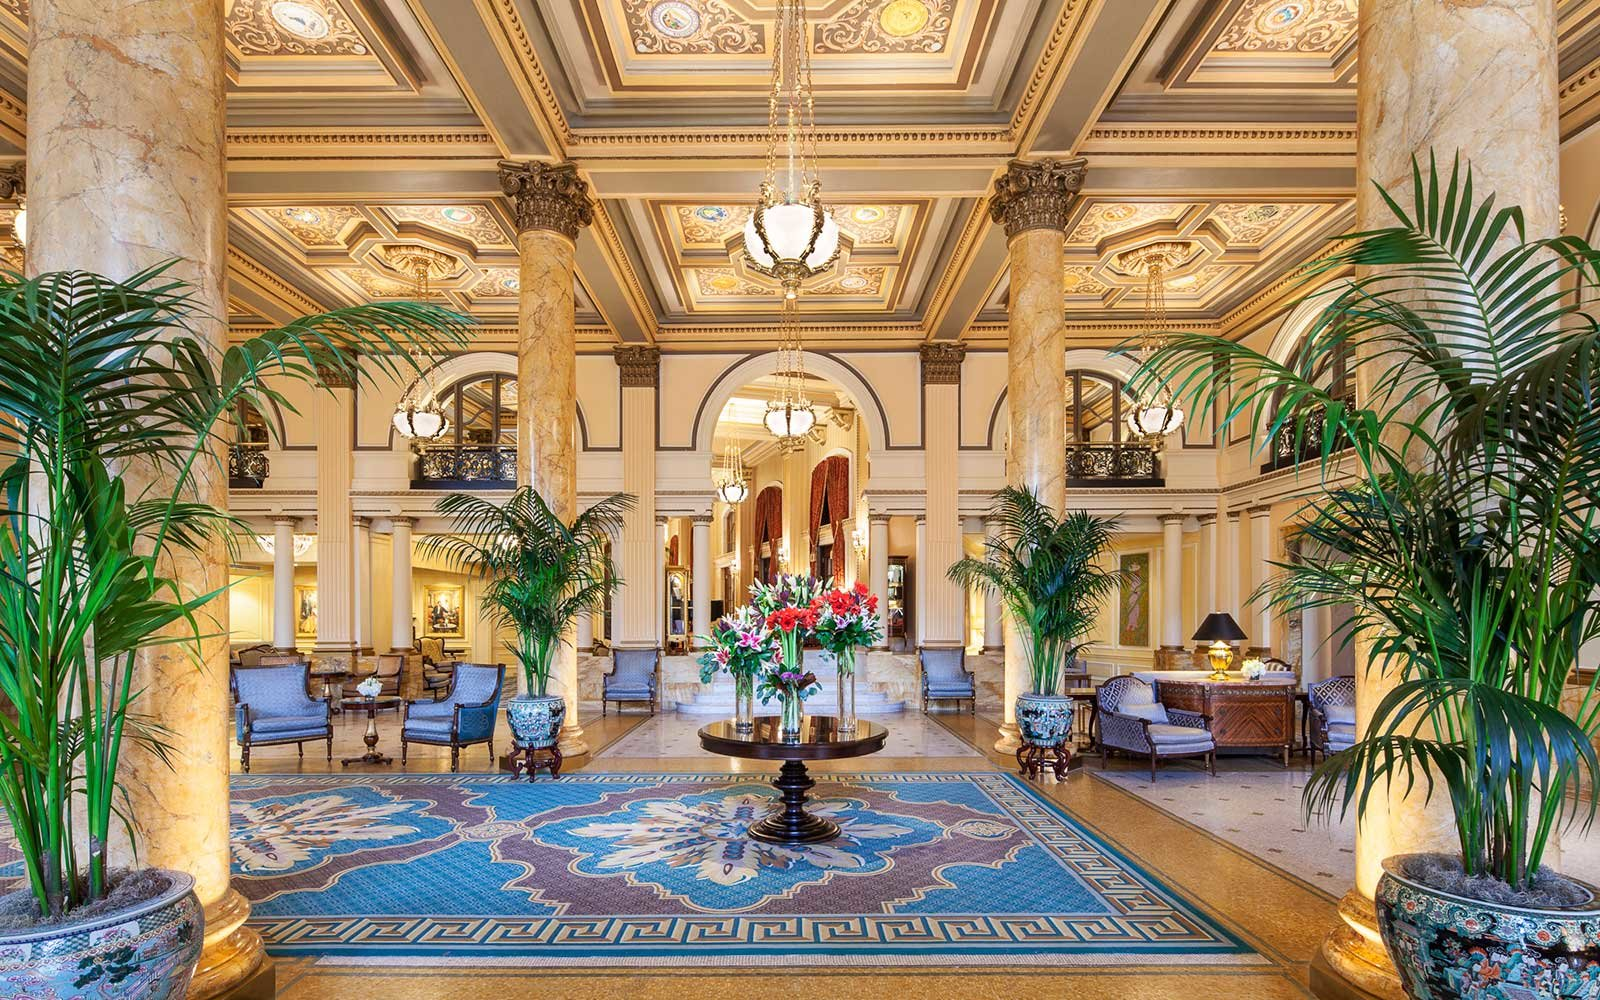 7. Willard InterContinental